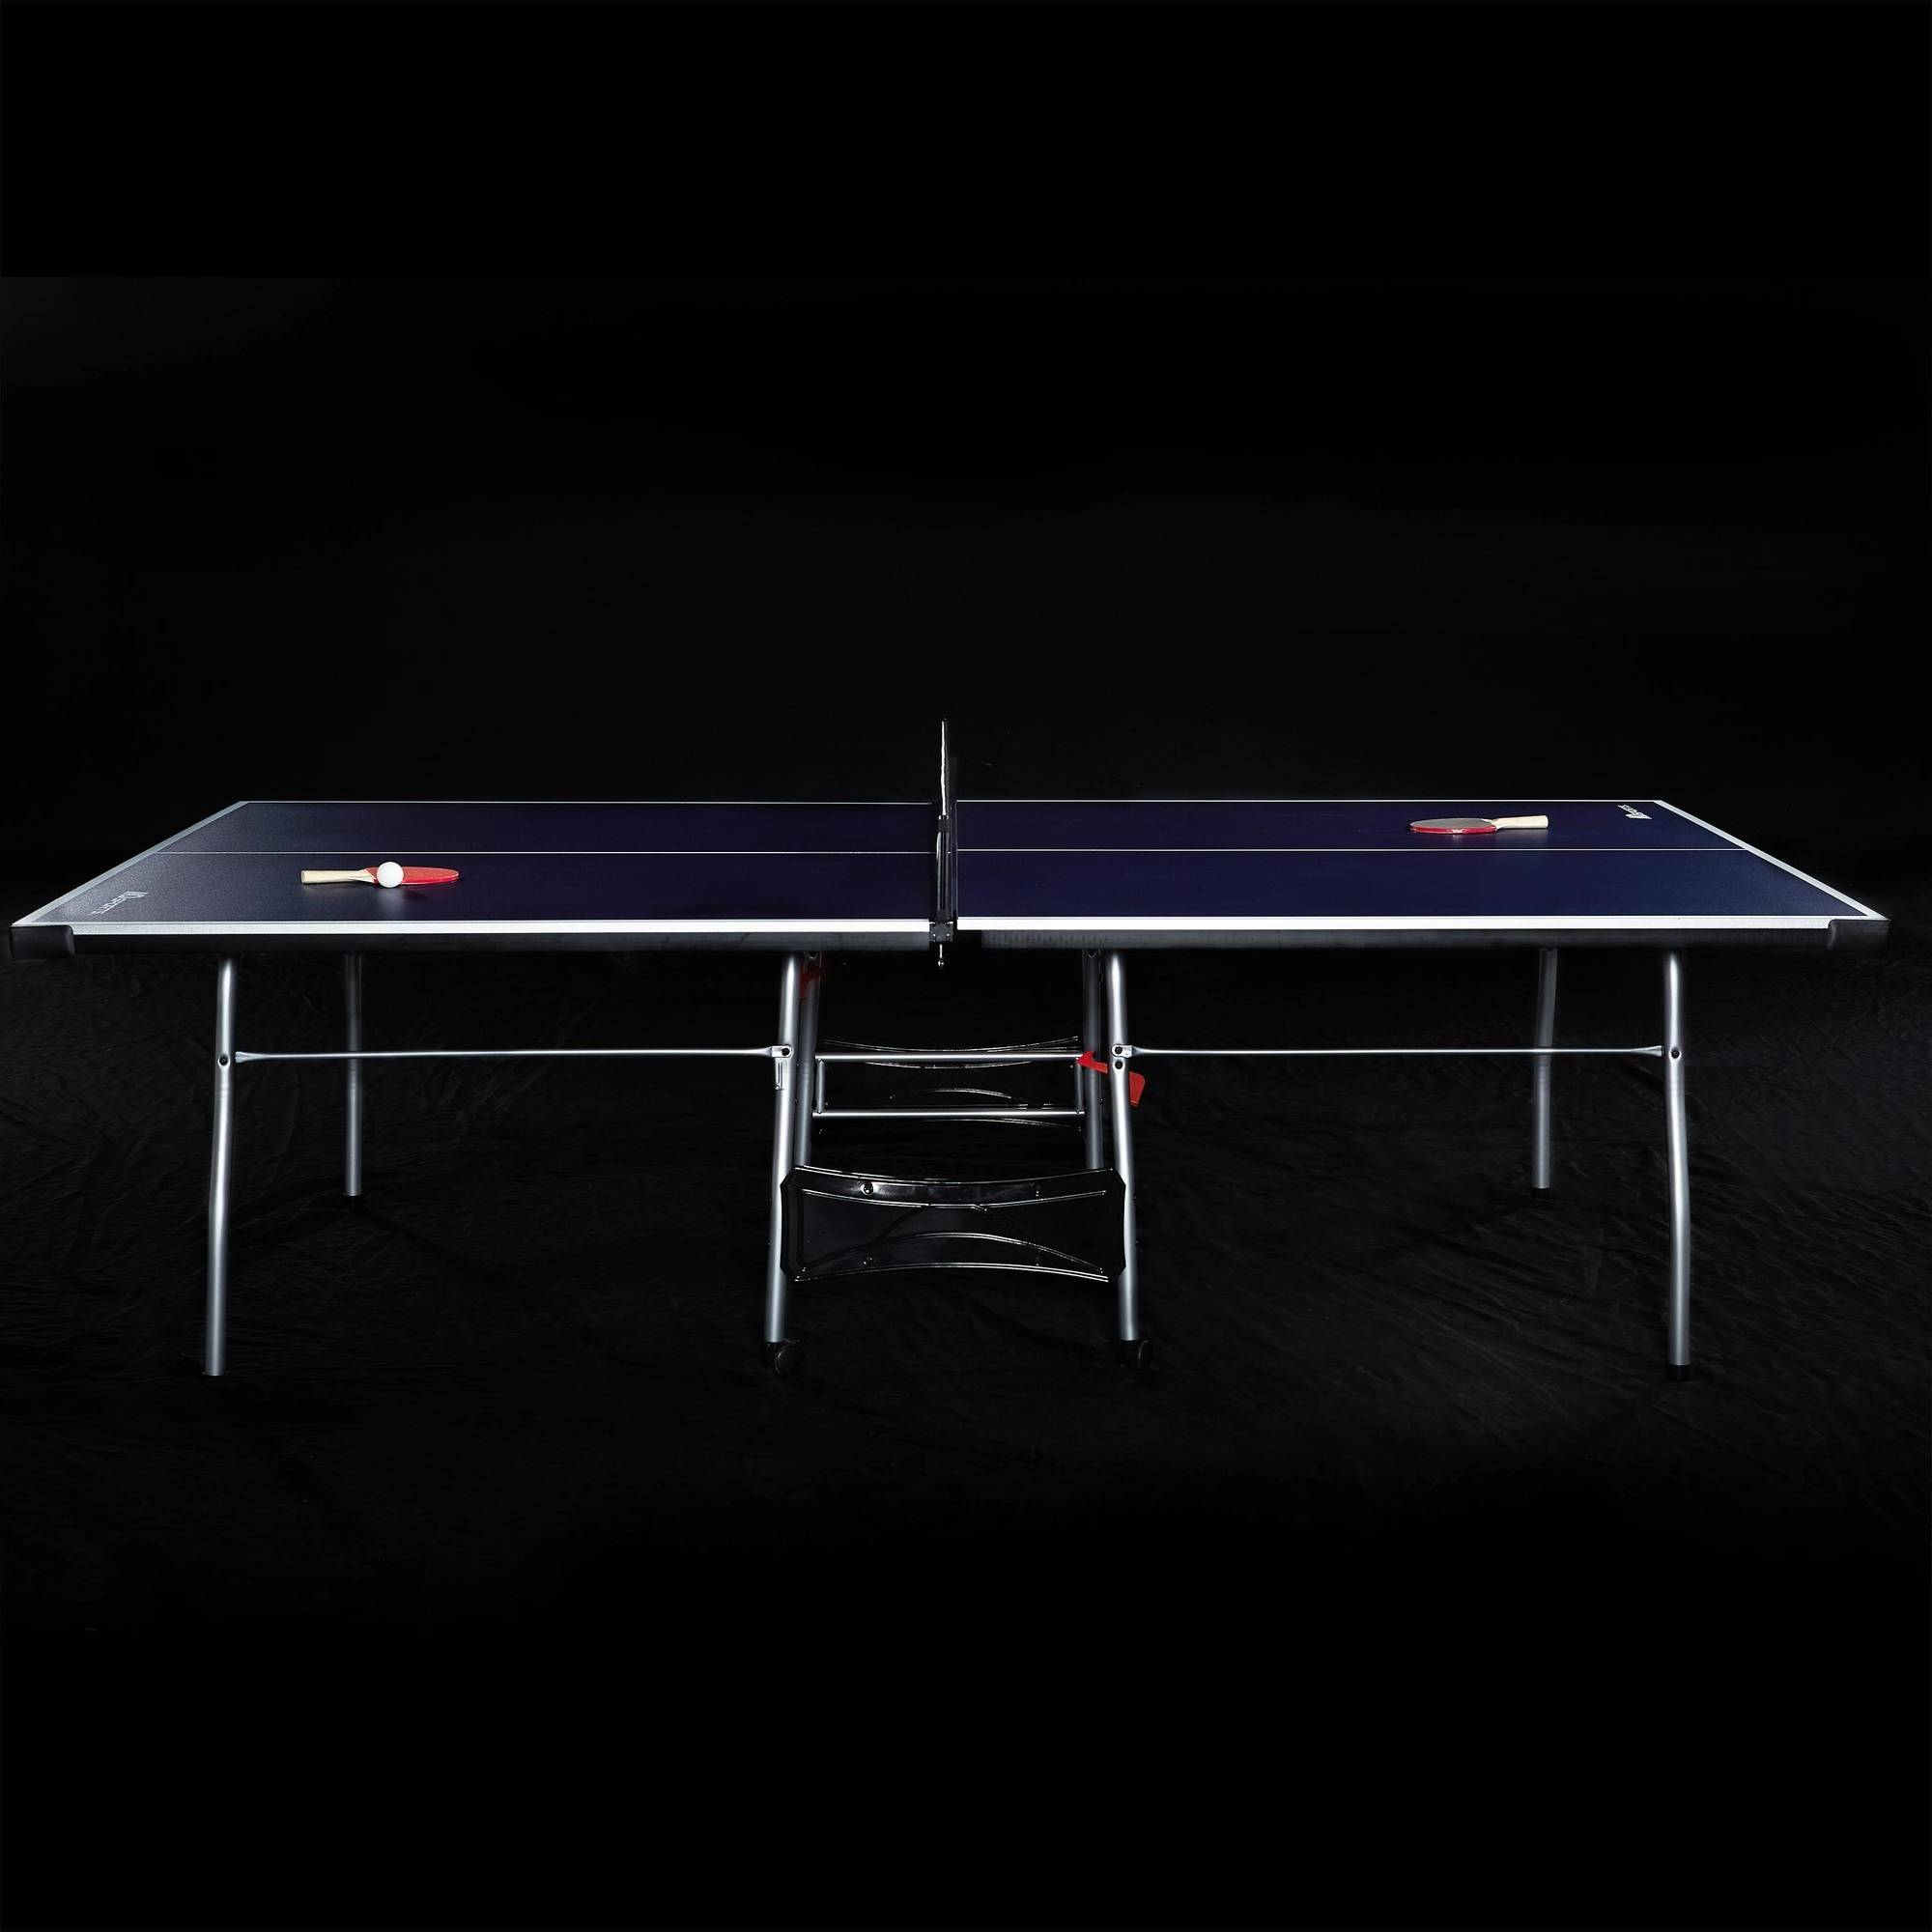 MD Sports Official Size Table Tennis Table Image 4 Of 7